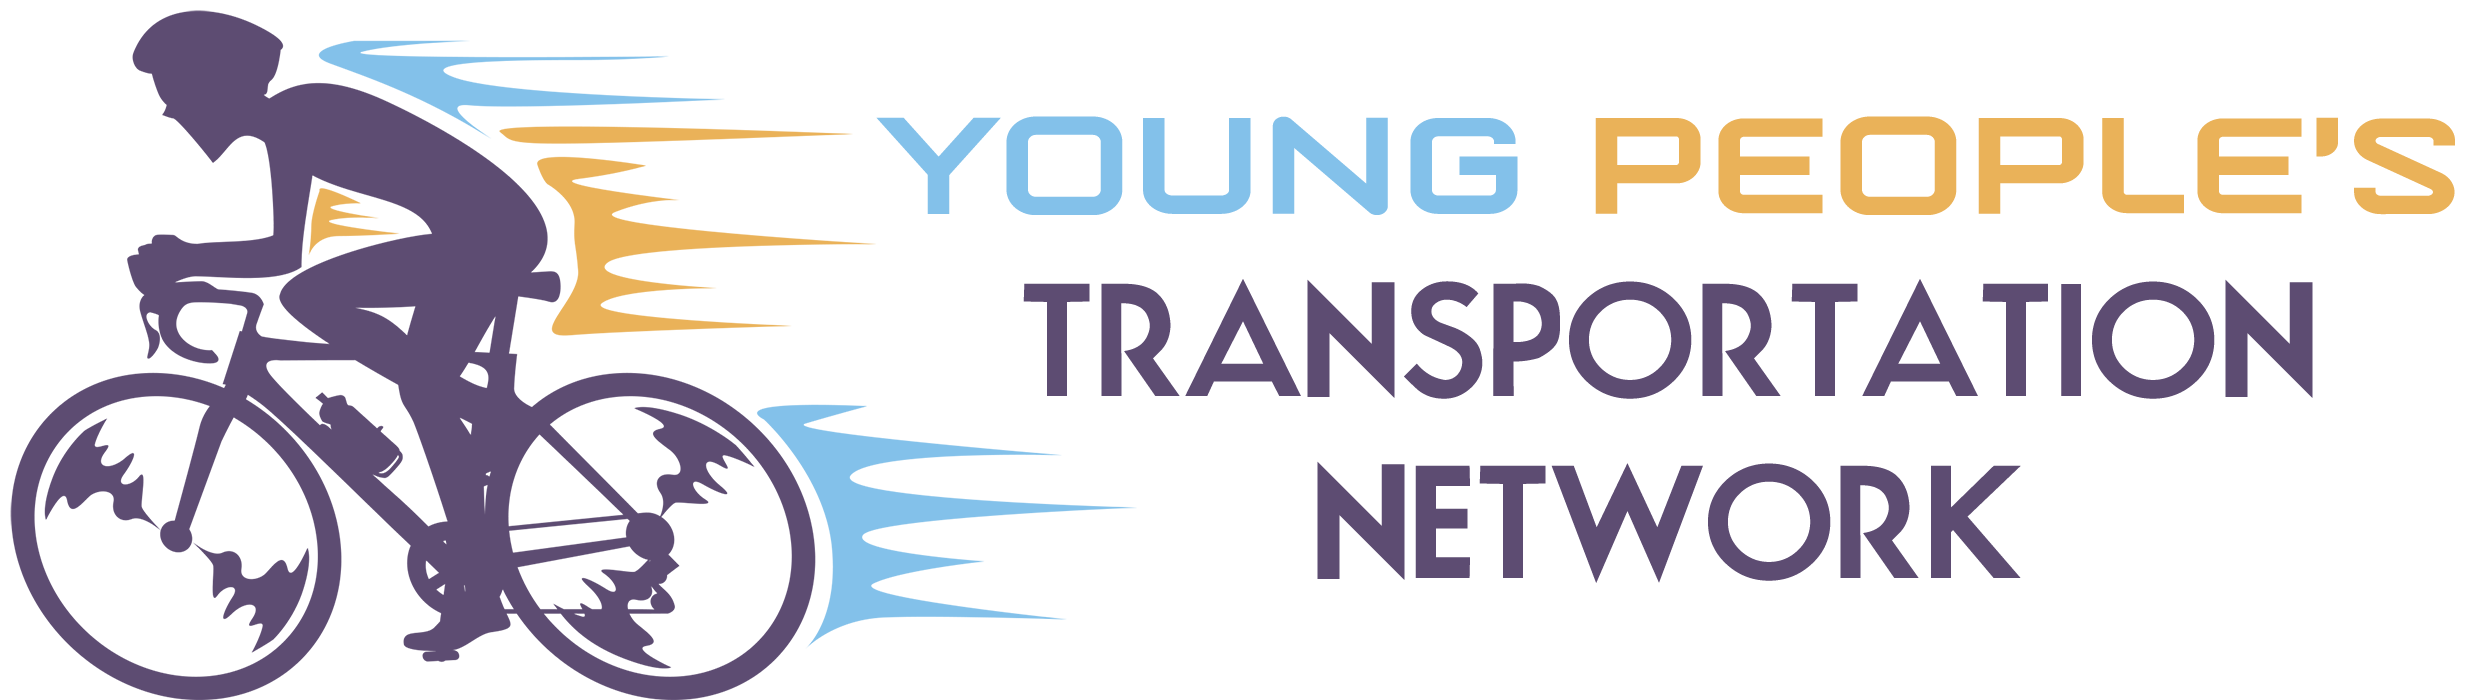 Young People's Transportation Network